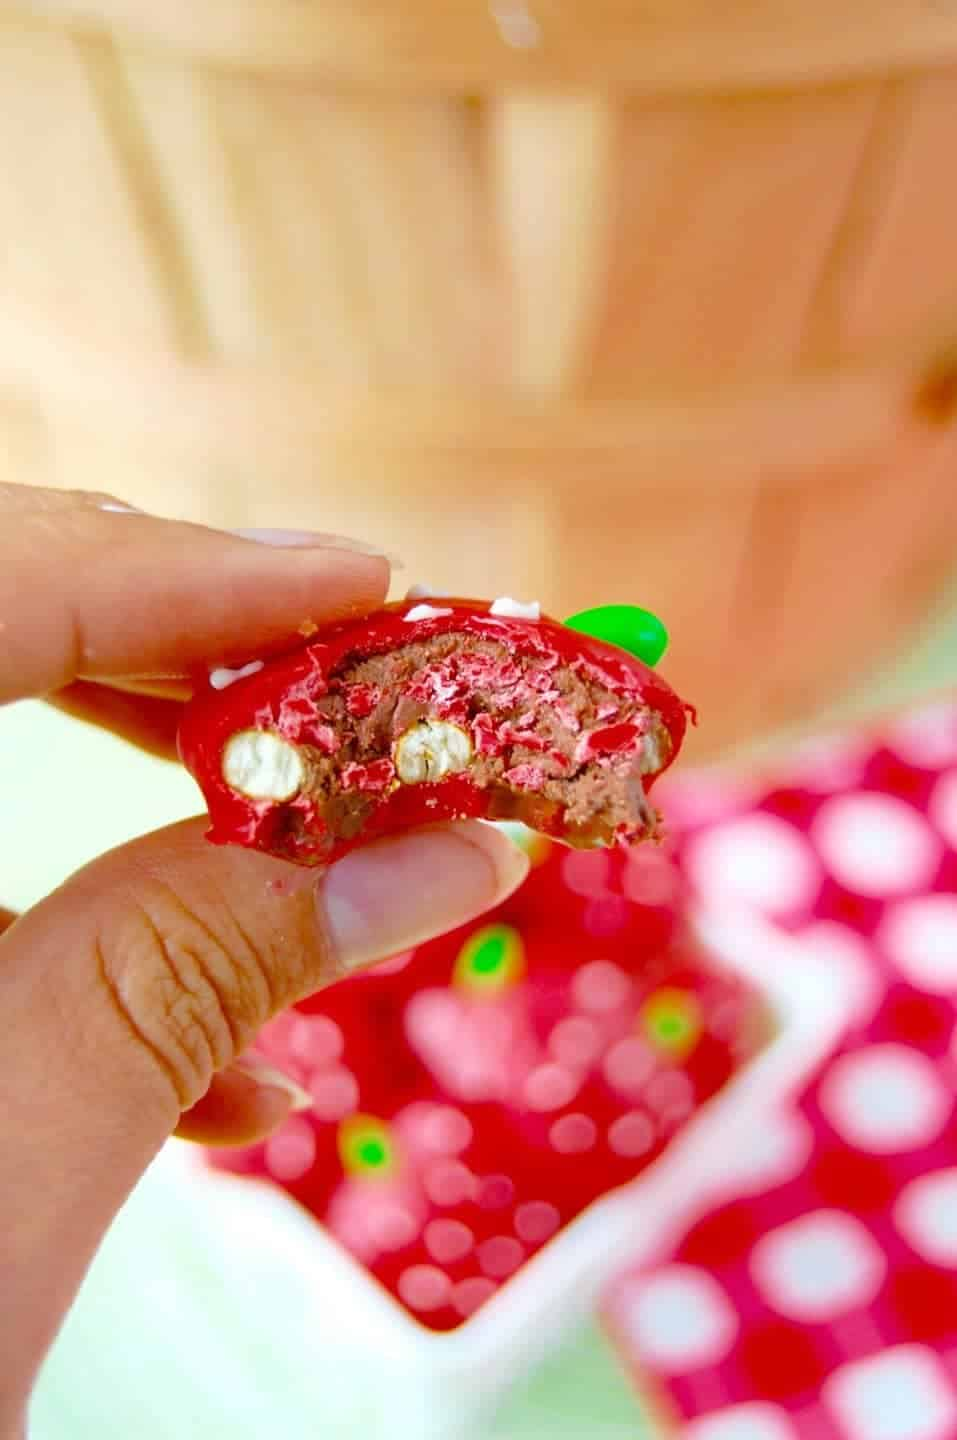 These cute little Strawberry Nutella Pretzel Bites look sweet and are packed with a fun surprise!